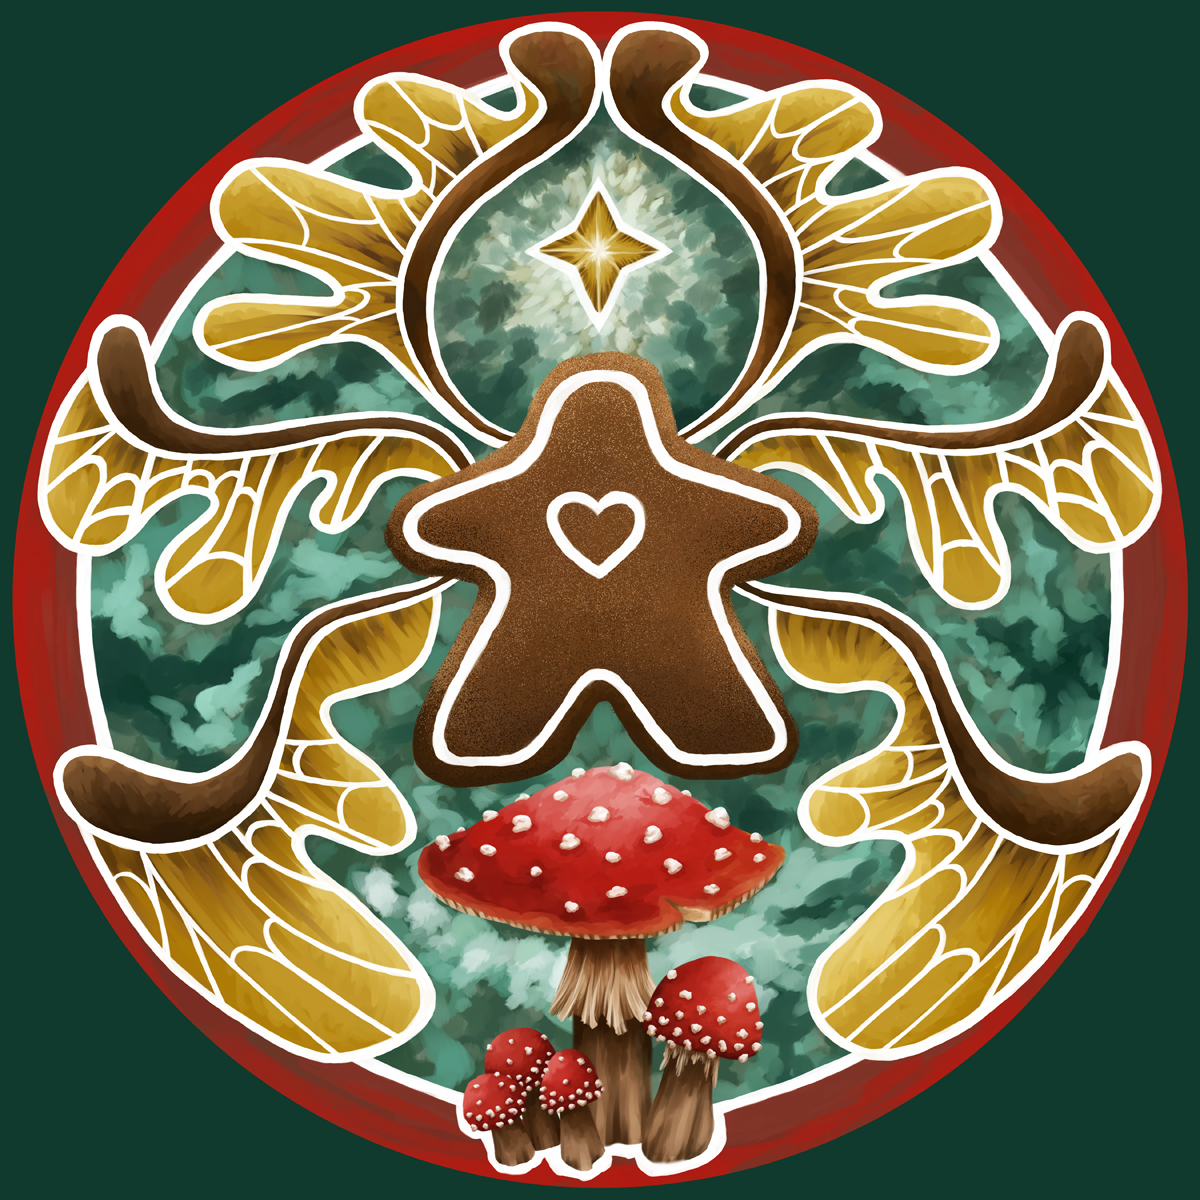 Christmas Gingerbread Meeple Faerie featuring Toadstools - Pixie Gen Logo, Digital Painting by Imogen Smid